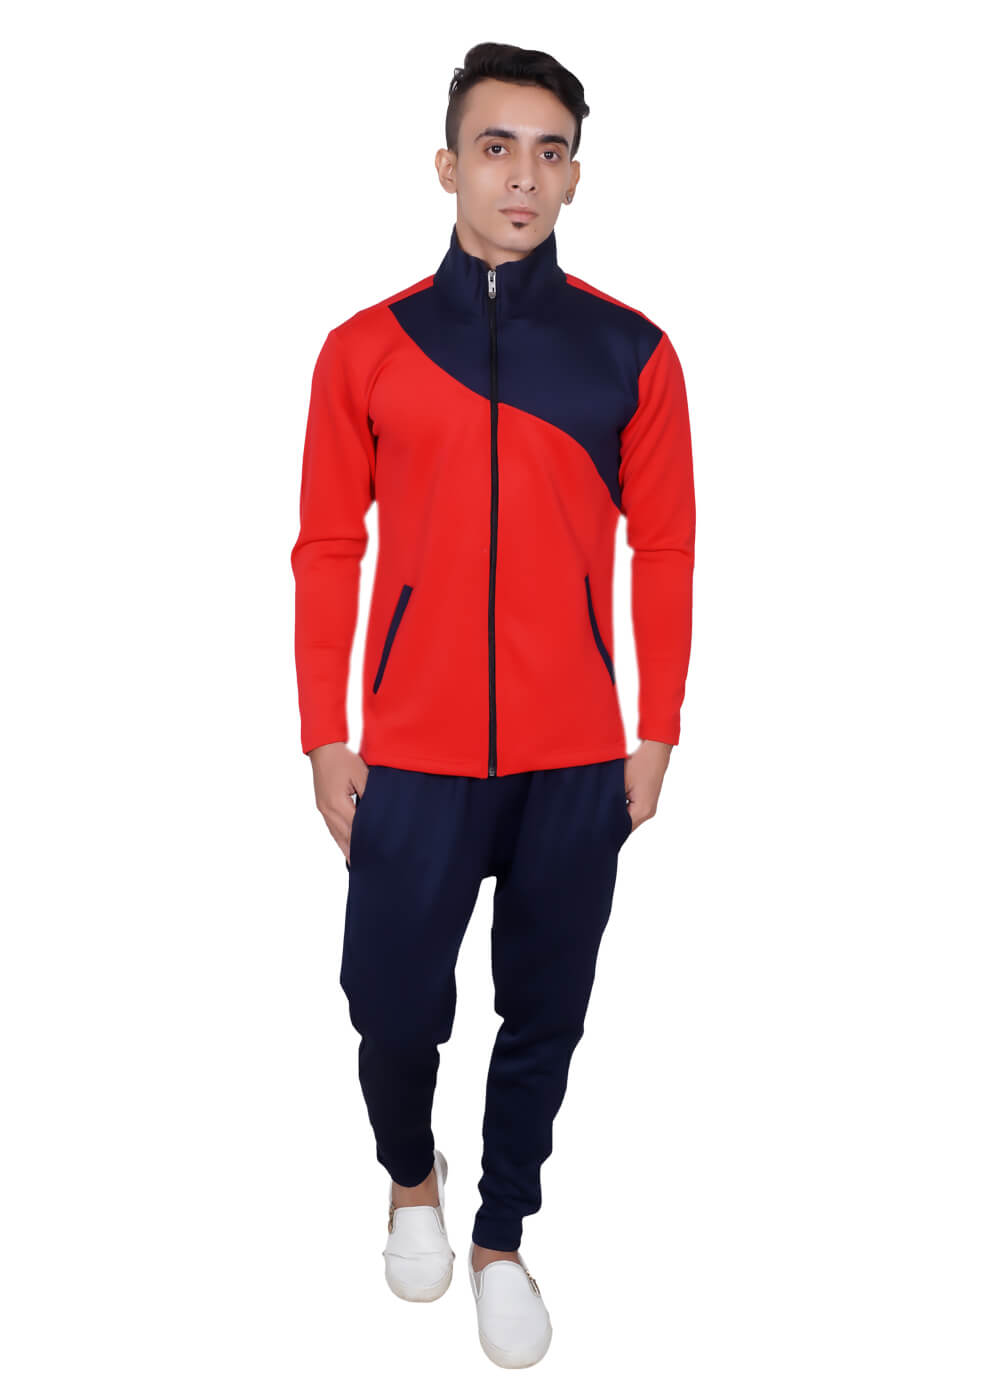 Cheap Tracksuits Manufacturers in Udaipur